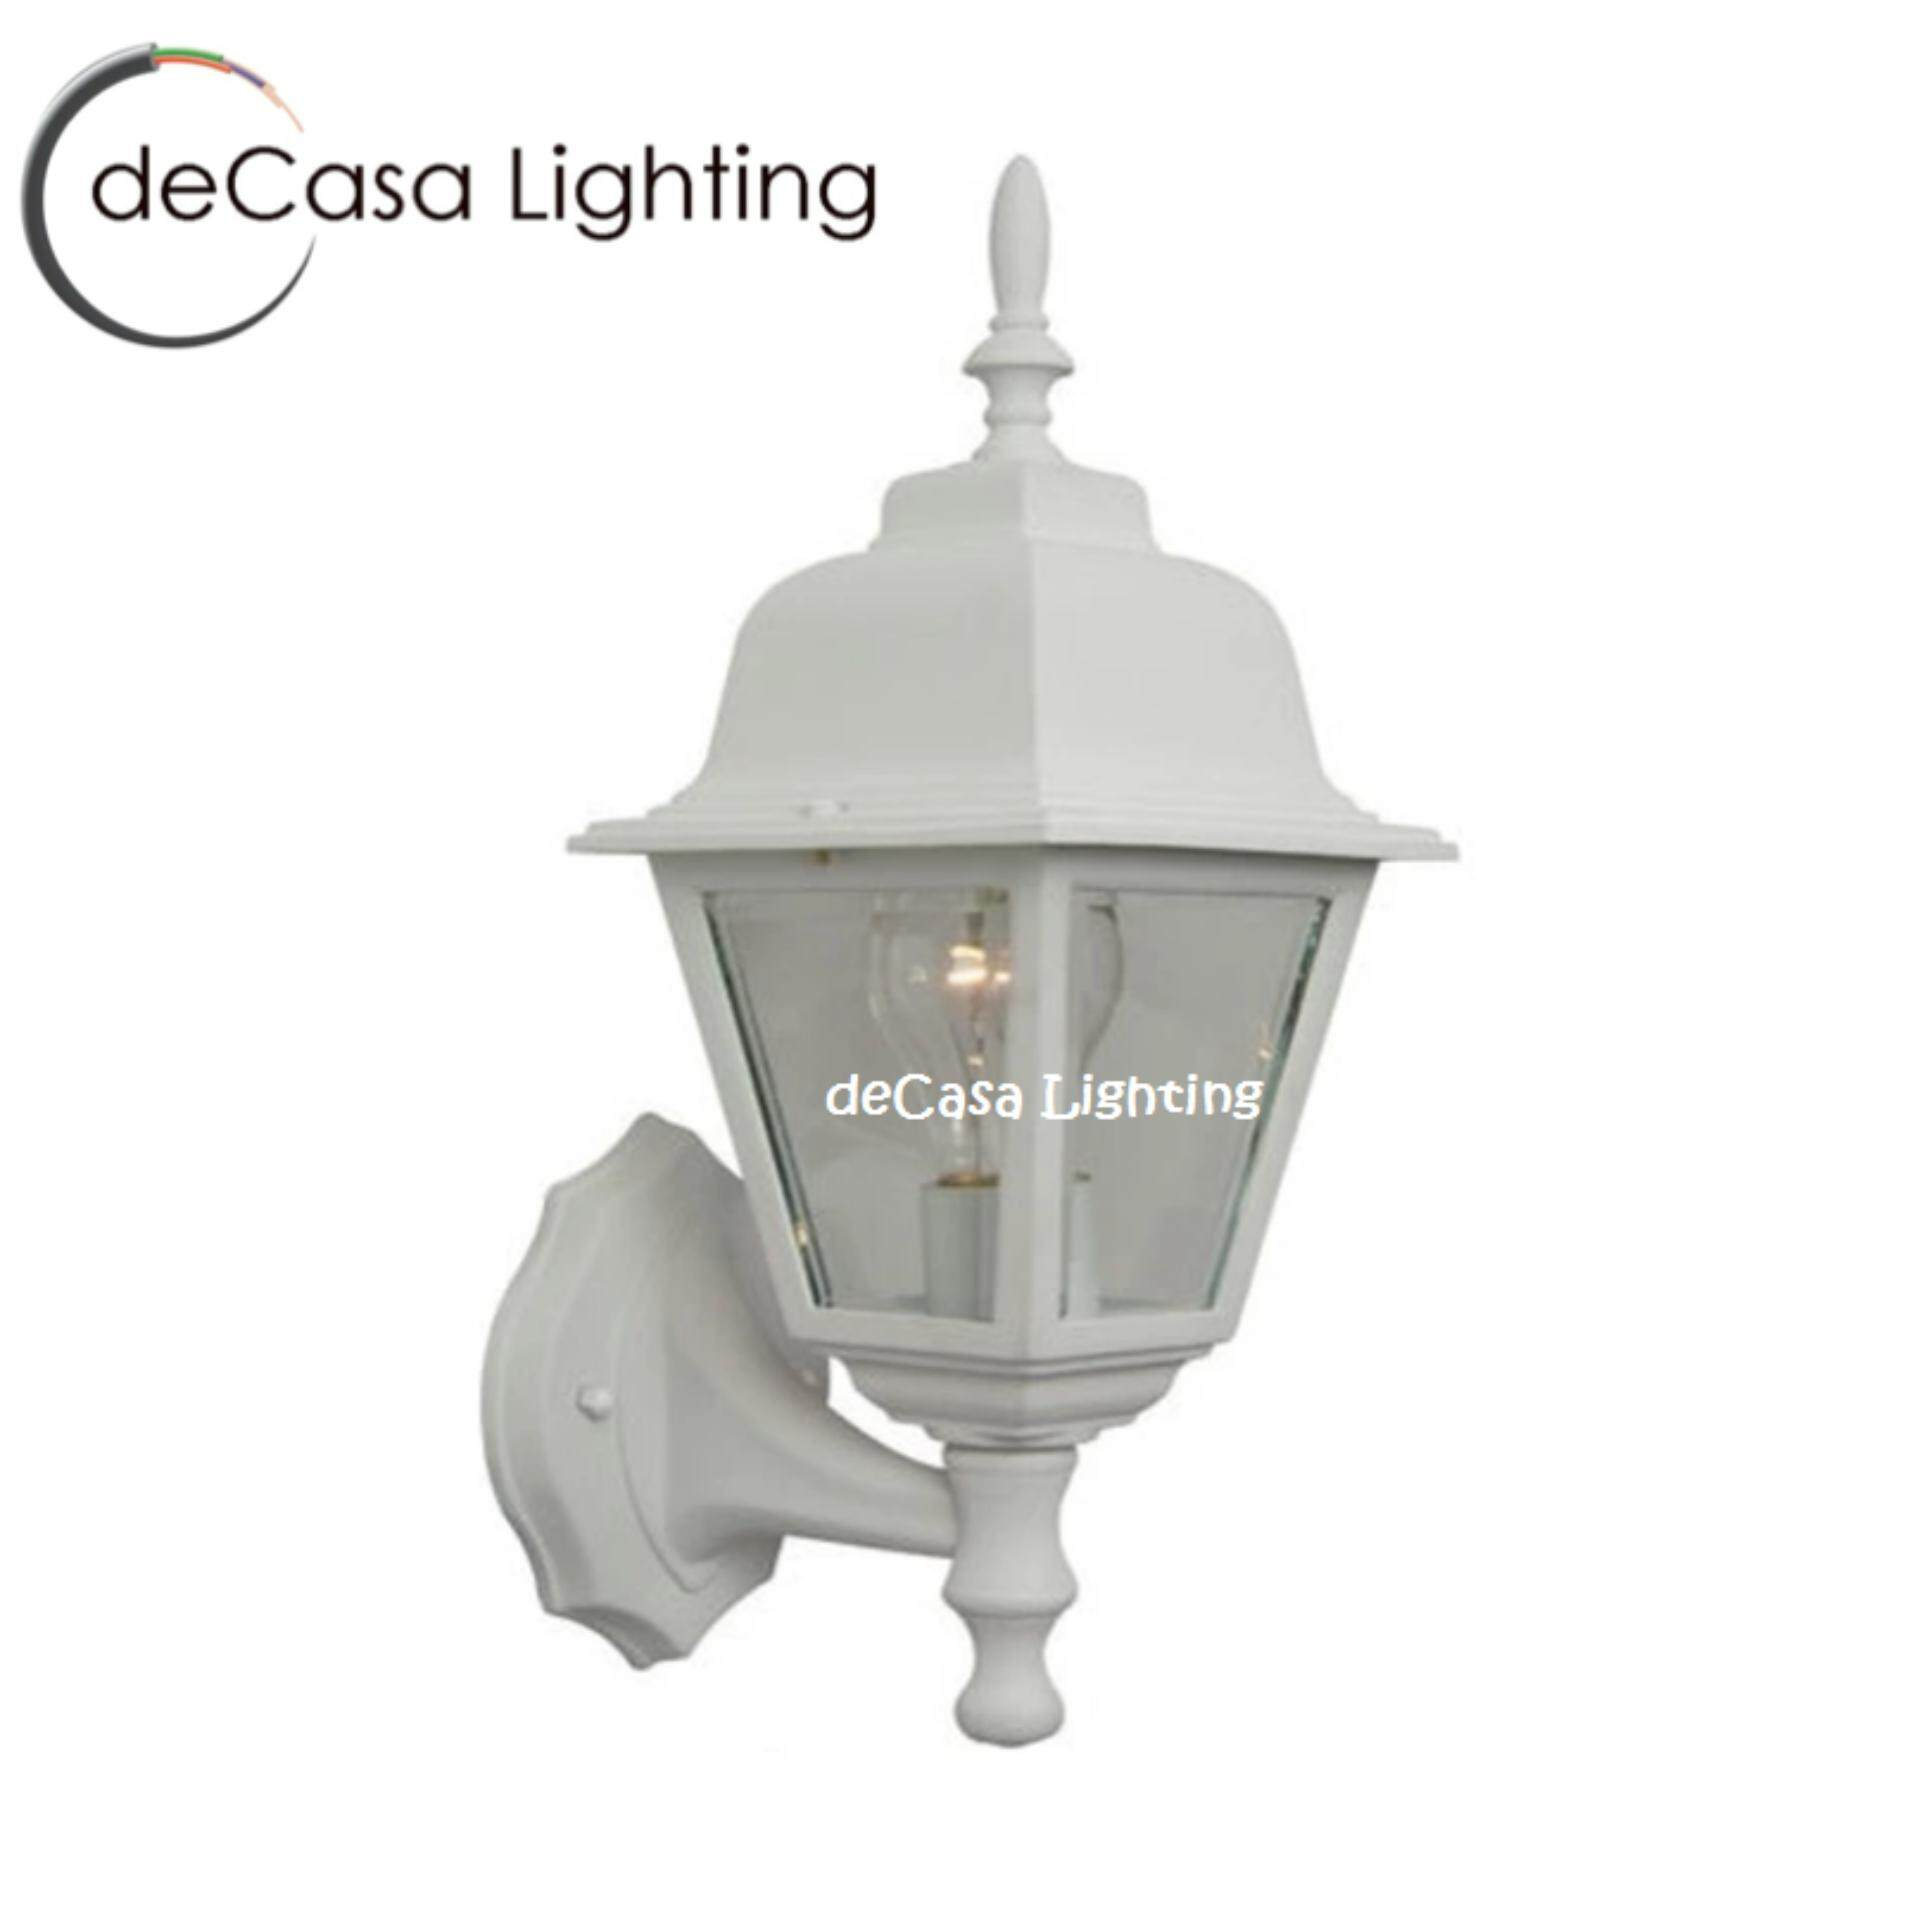 Outdoor Wall Light DECASA OUTDOOR WALL LIGHT-APH-1904A-W Black or White (APH-1904A-W)